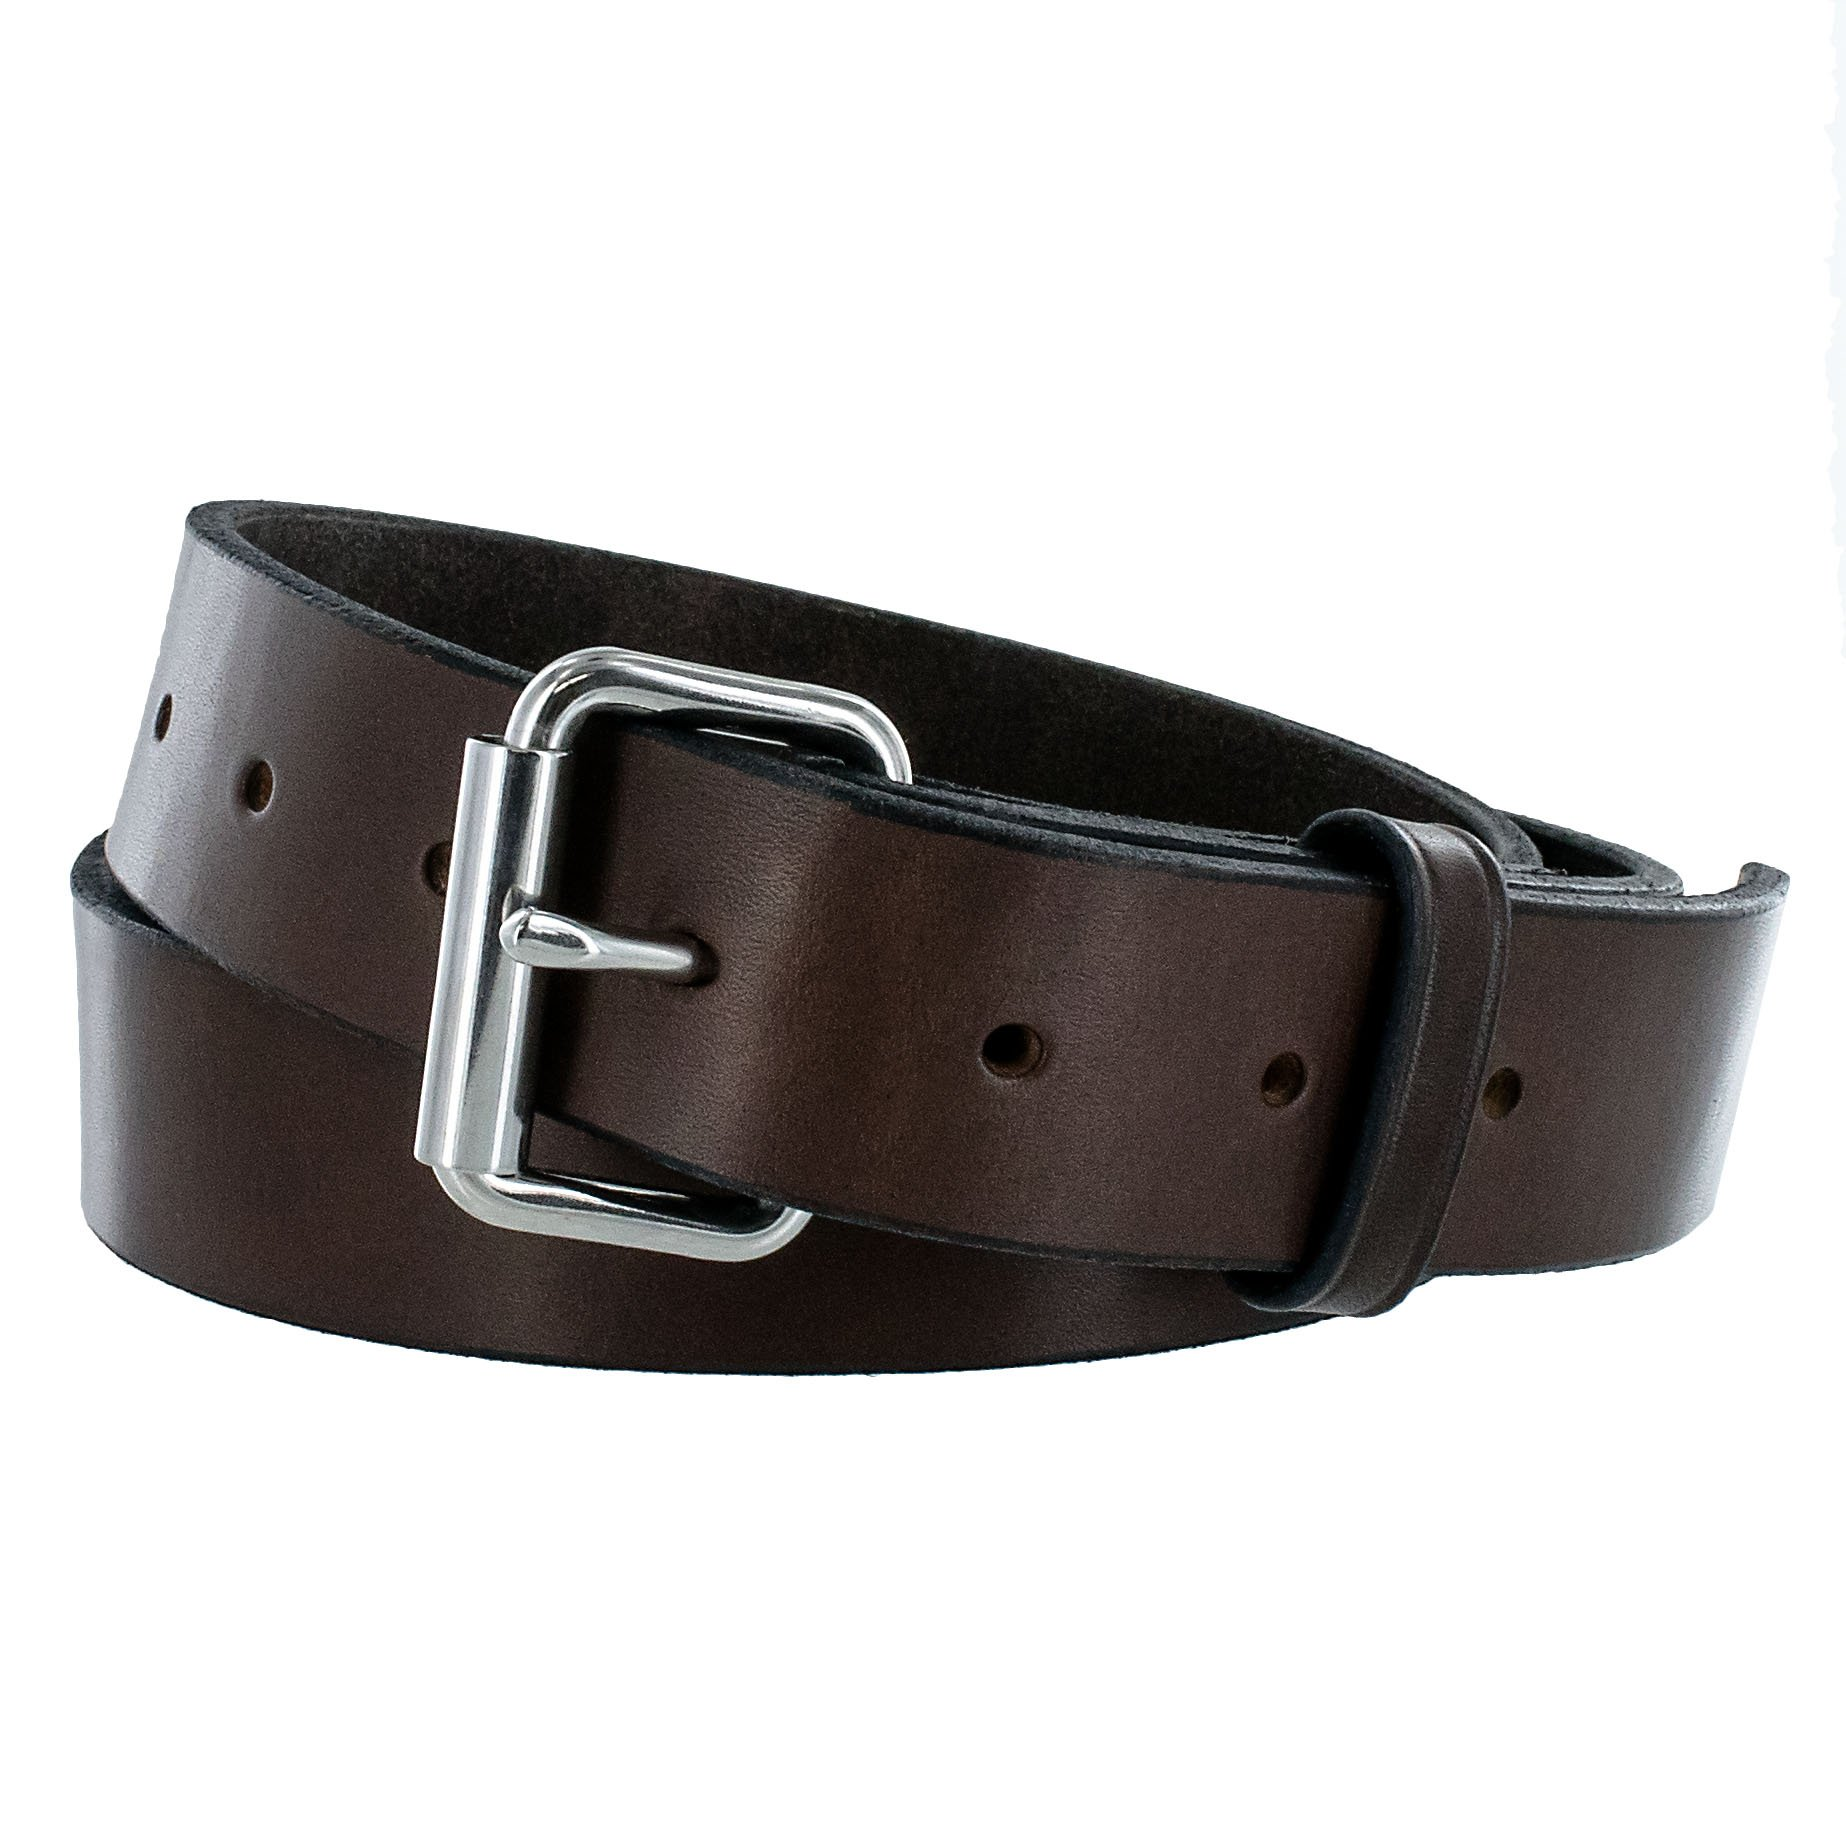 Hanks Gunner - USA Made Concealed Carry CCW Leather Gun Belt - 100 Year Warranty - 14 Ounce - Brown - 68 by Hanks Belts